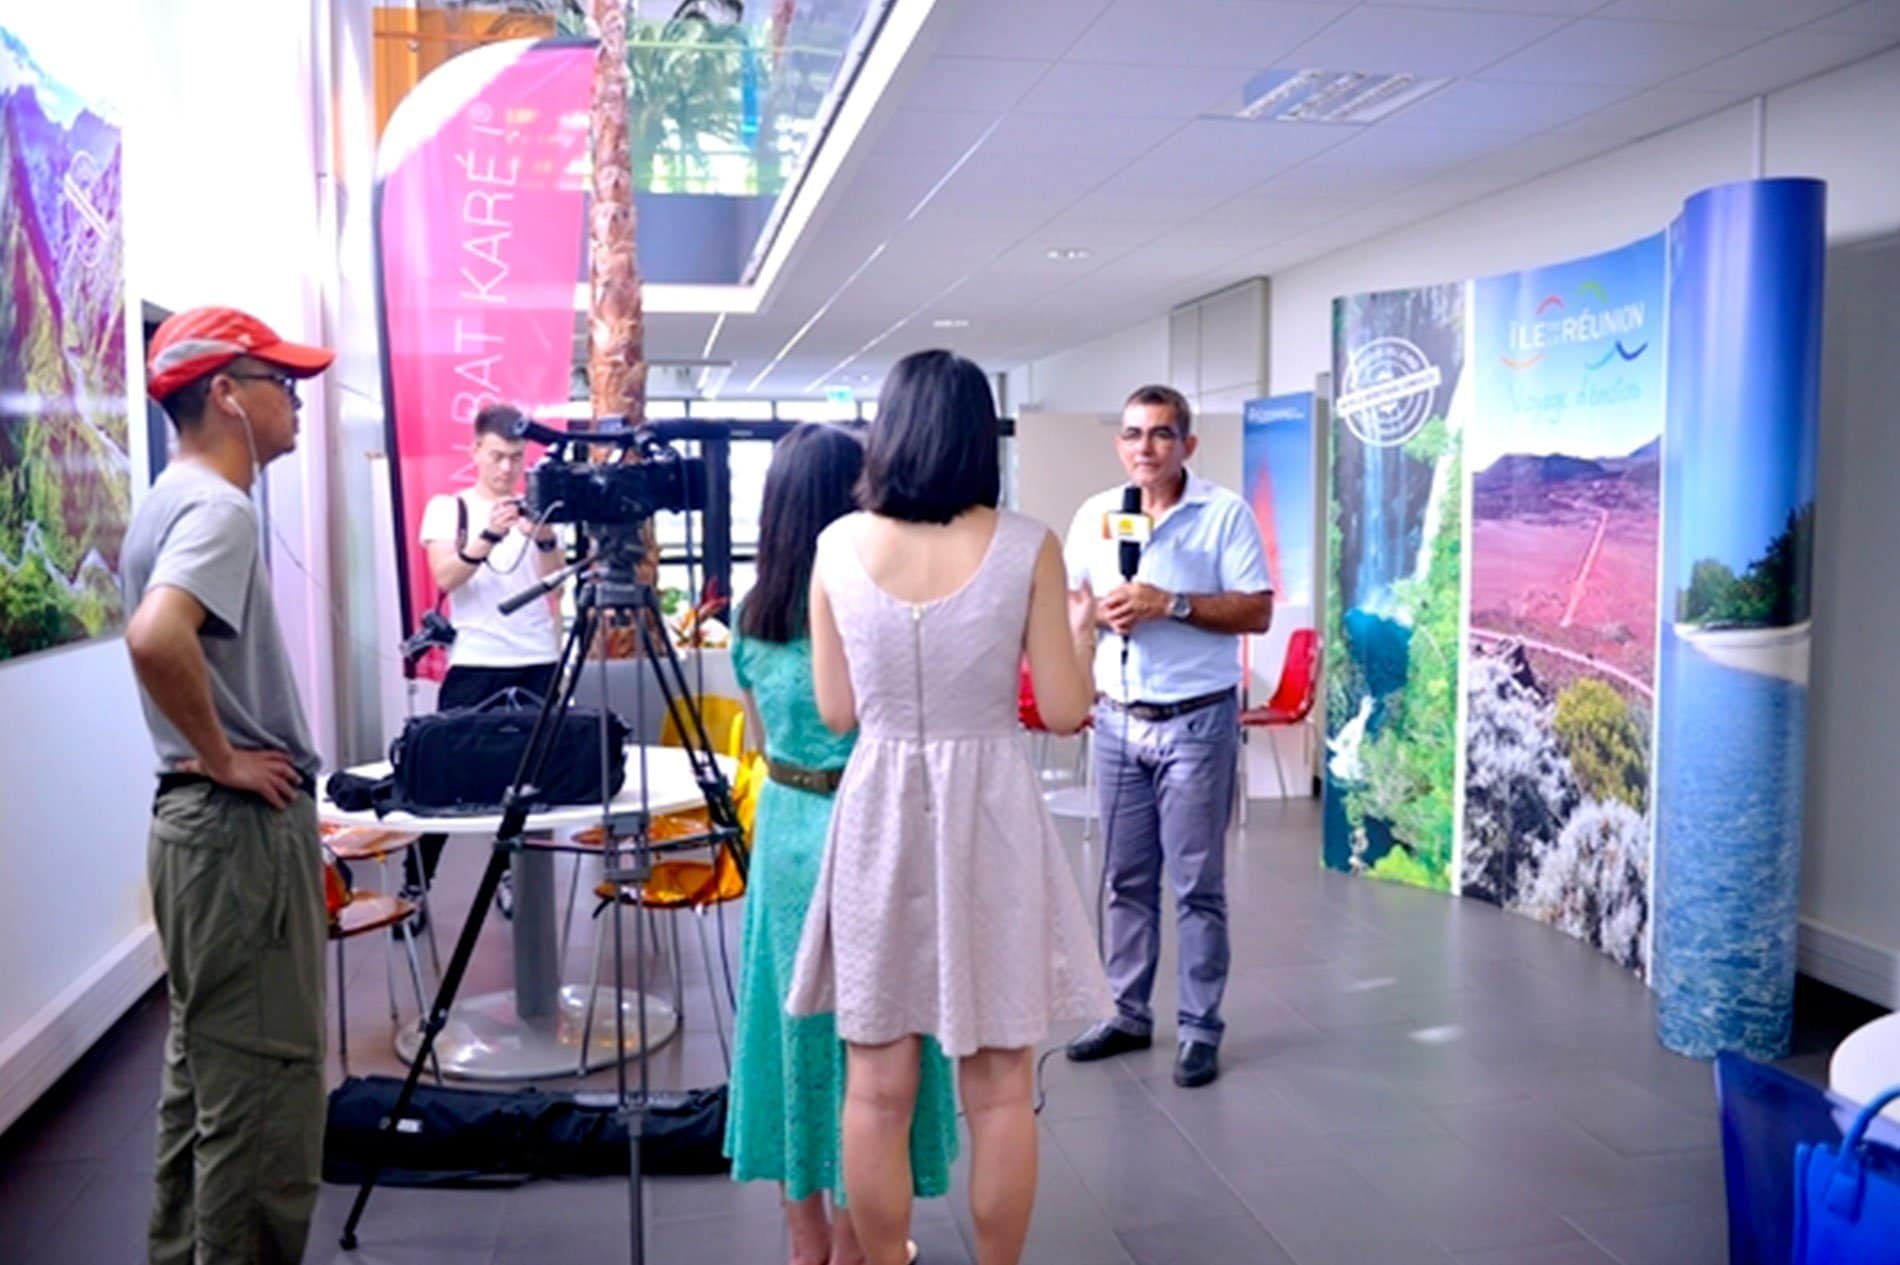 ACCEUIL-Reunion Island in the eye of Chinese television cameras